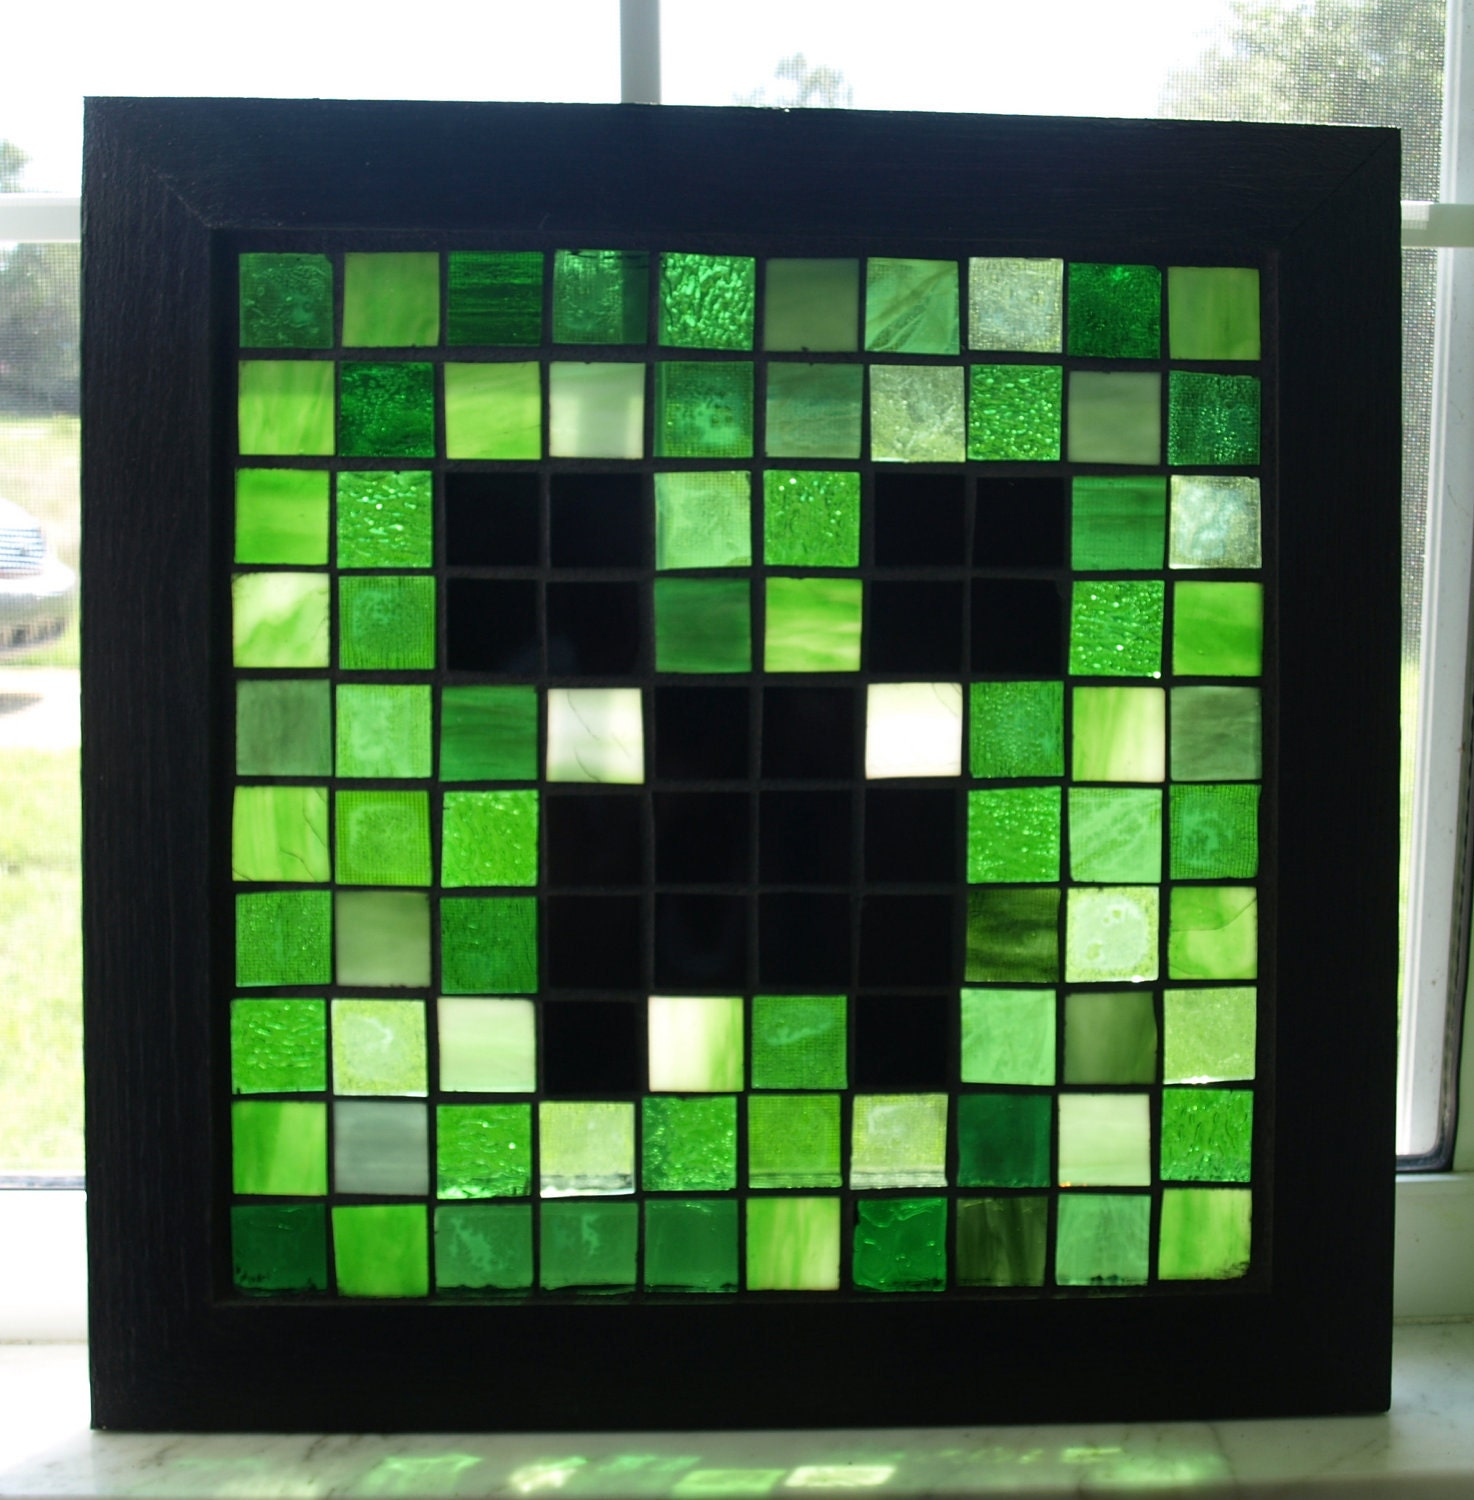 Sale mosaic creeper minecraft stained glass by artfulsalvage for Window design minecraft